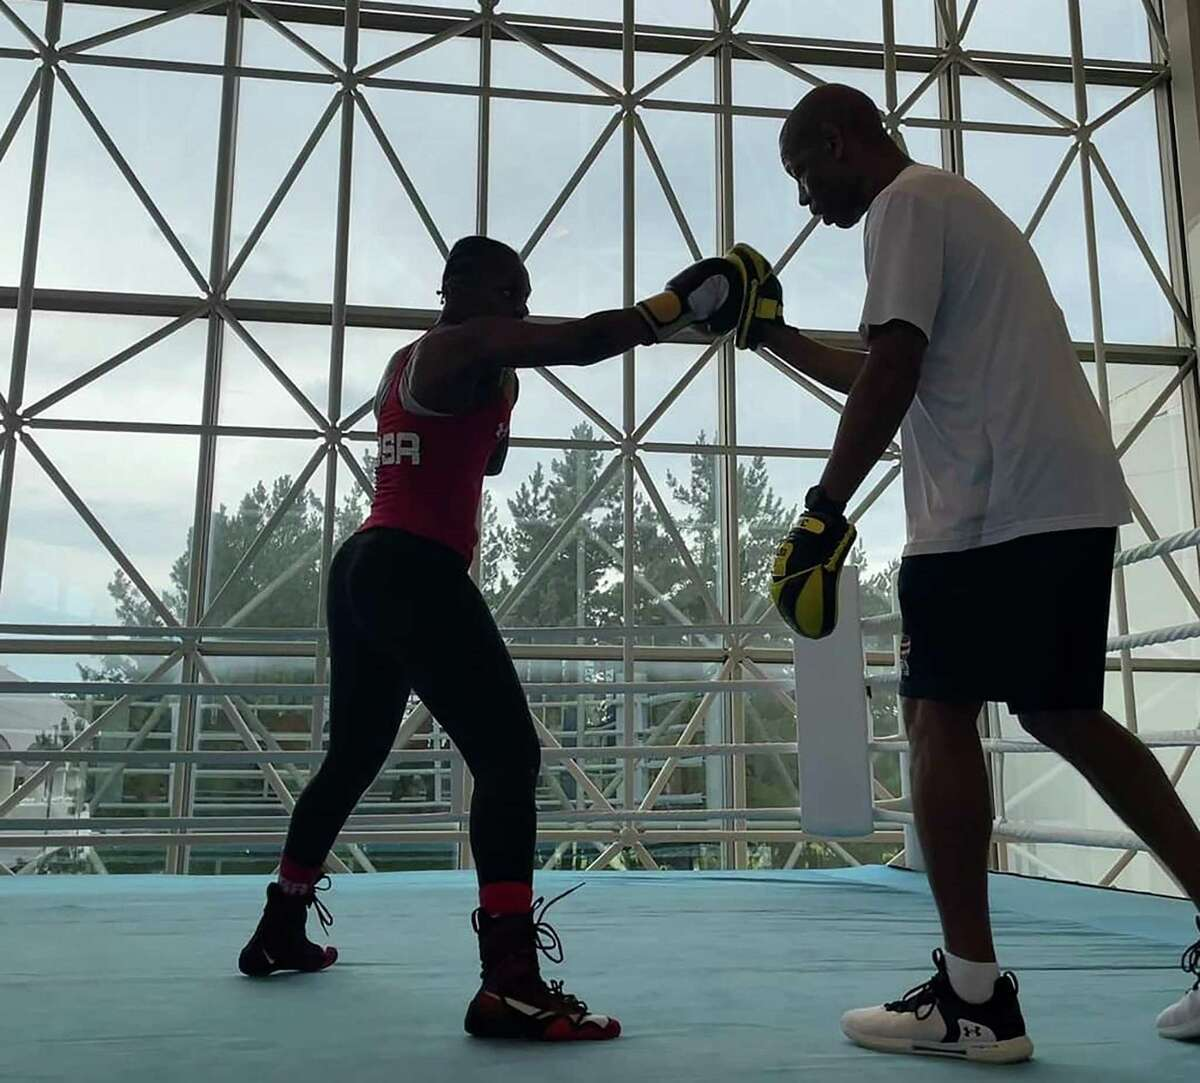 Oshae Jones trains with San Antonio boxing coach Jeff Mays at a training camp in Miyazaki, Japan. Jones won the bronze medal at the 2020 Tokyo Olympics in the women's 152-pound division.